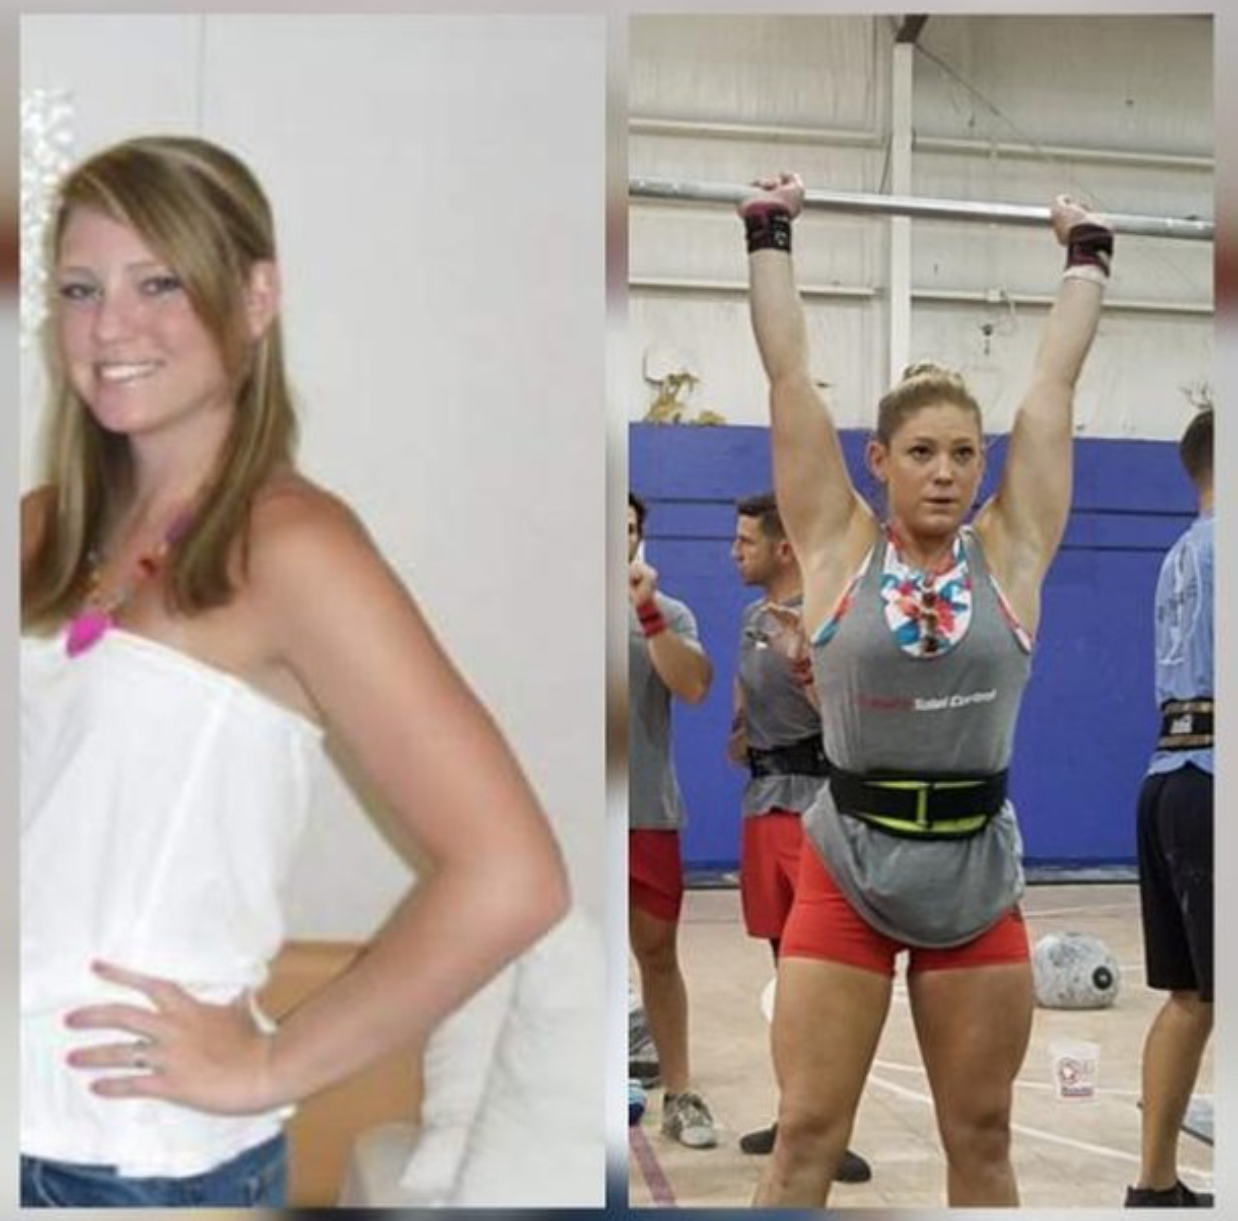 Bride Kelsey: 125 lbs.(June 2011) on the left to 145 Ibs. on the right (June 2018). I'm currently the heaviest, but the healthiest and fittest I've ever been in my life.